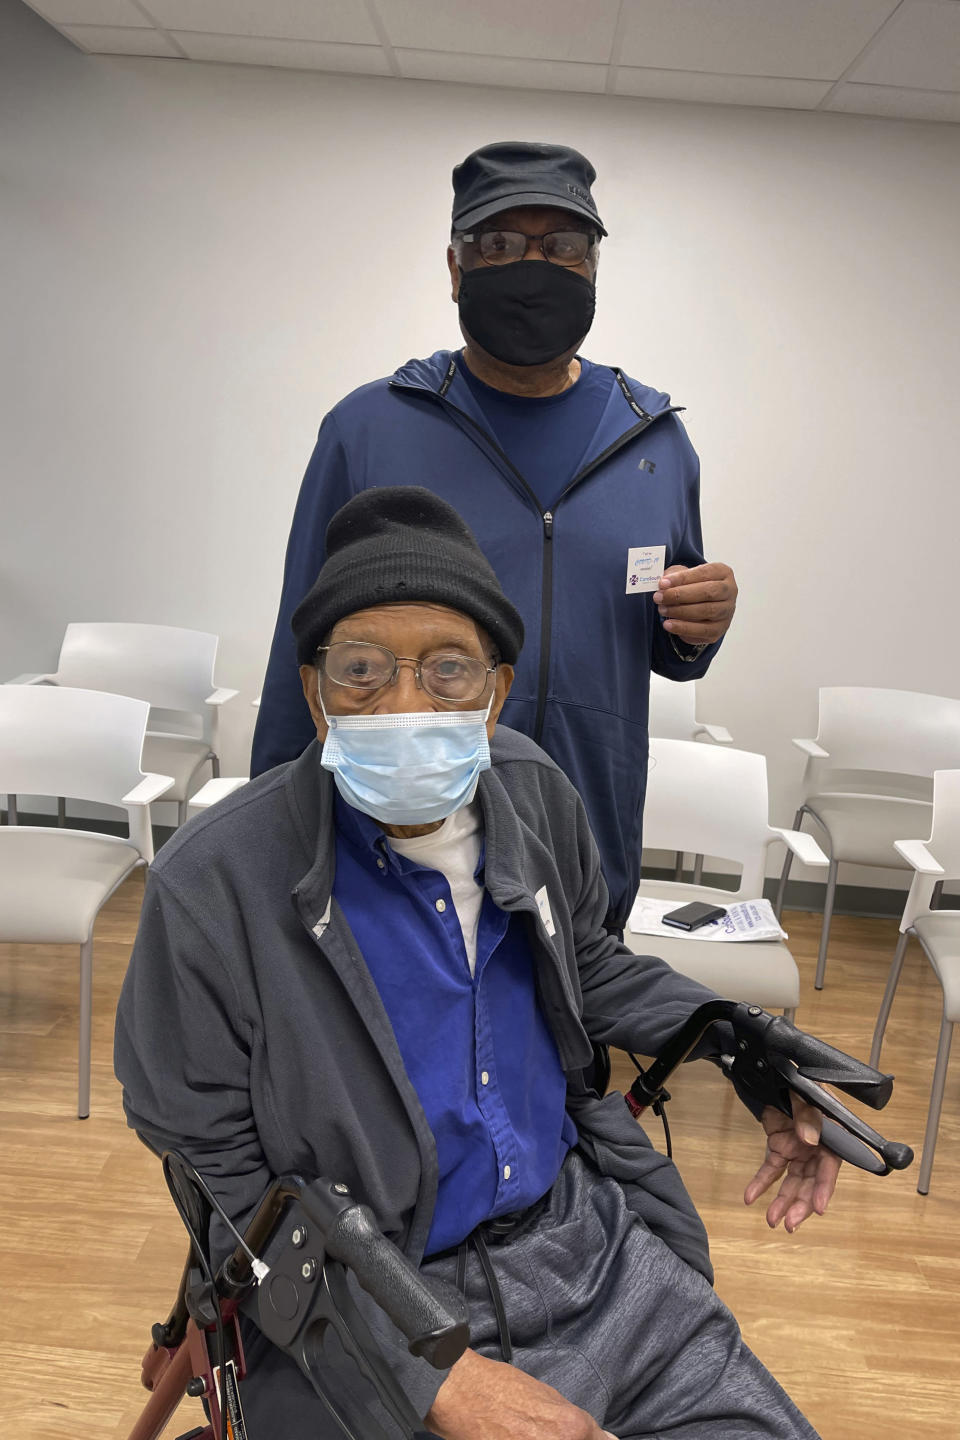 This image provided by CareSouth Medical and Dental, Larry Hamilton, 70, standing, brings his father Leo Hamilton, 96, to CareSouth Medical and Dental on Jan. 22, 2021, in Baton Rouge, La., to receive his COVID-19 vaccine. The CareSouth clinic in Baton Rouge was recruited to join the COVID-19 vaccination campaign after the Louisiana Department of Health used maps and data to locate vulnerable neighborhoods without vaccination sites. (CareSouth Medical and Dental via AP)